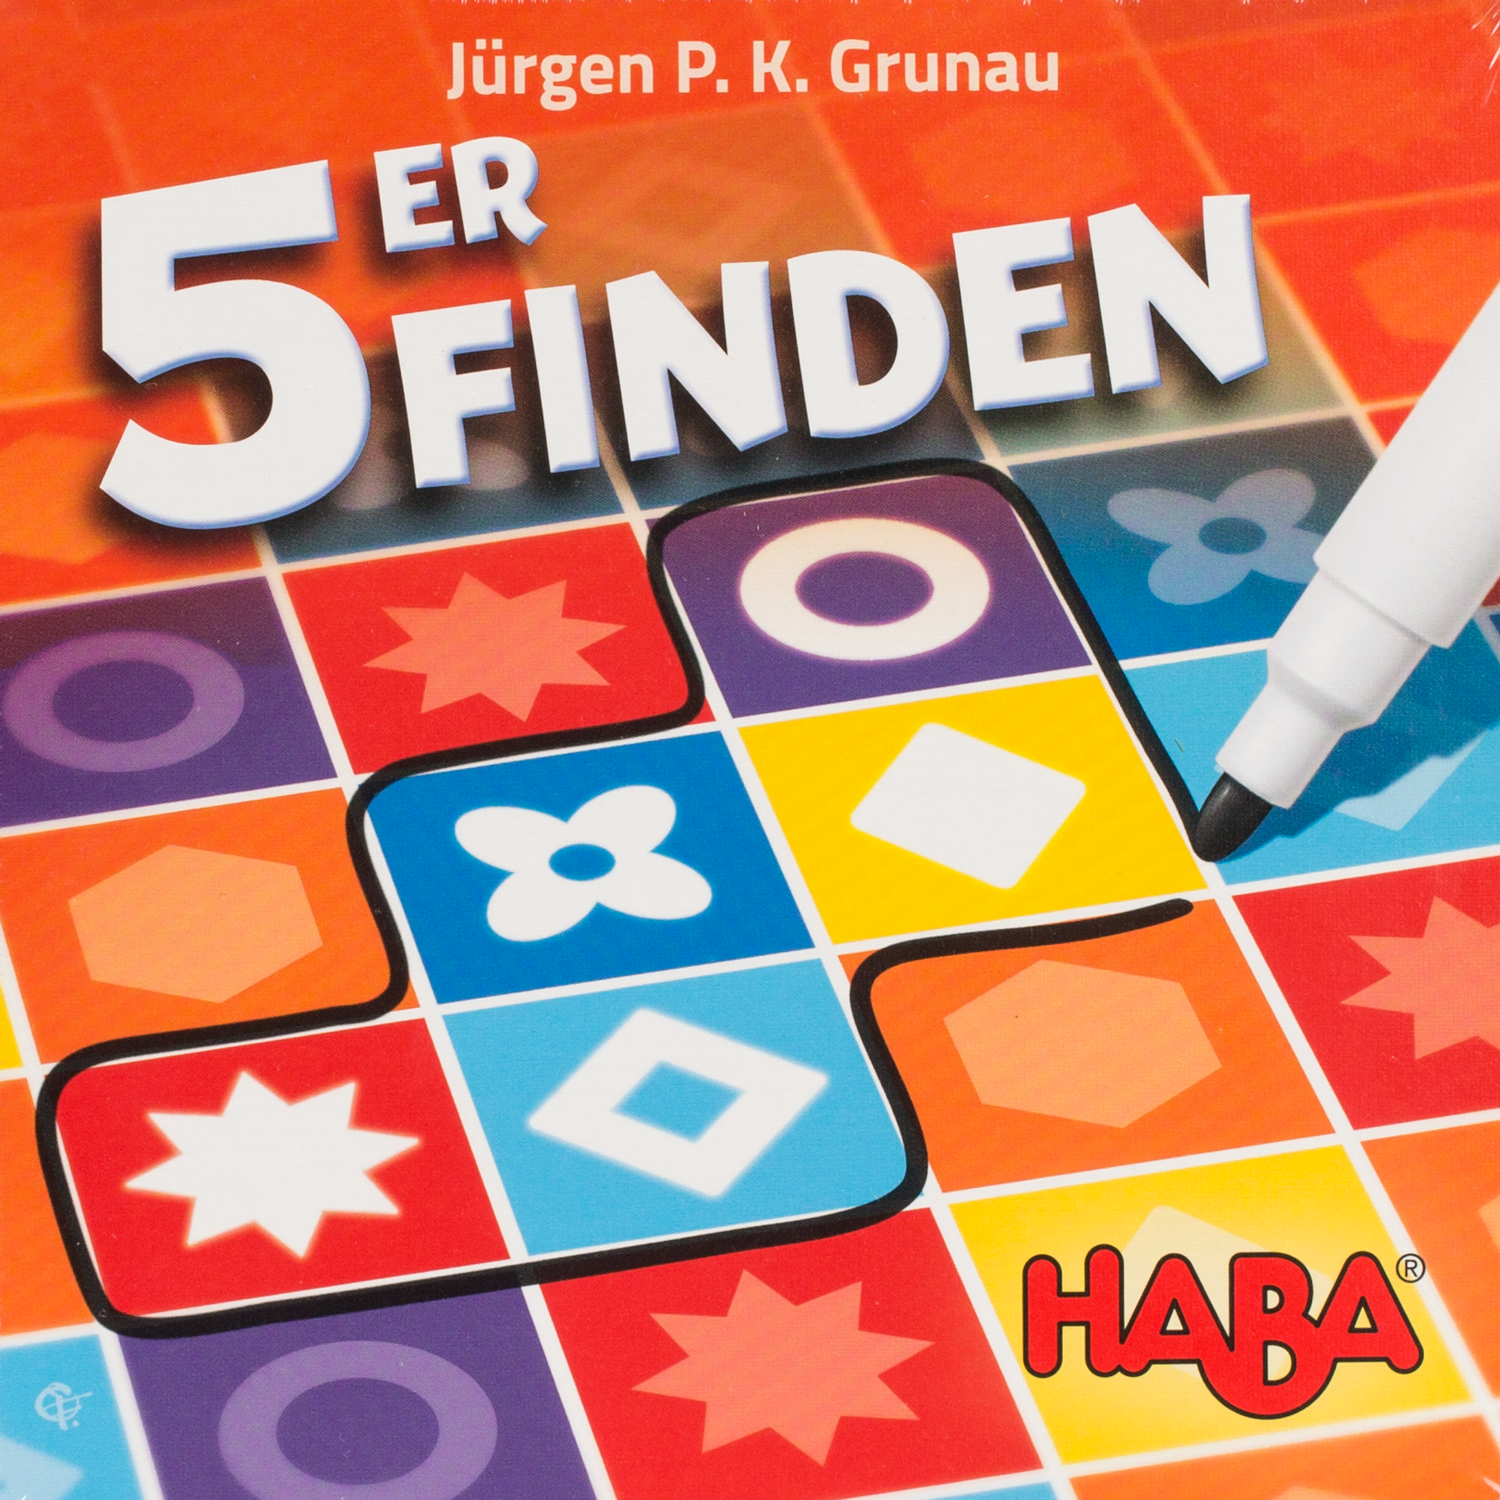 5ER-Finden-01-buy-HABA-game-from-Out-of-Town-Games